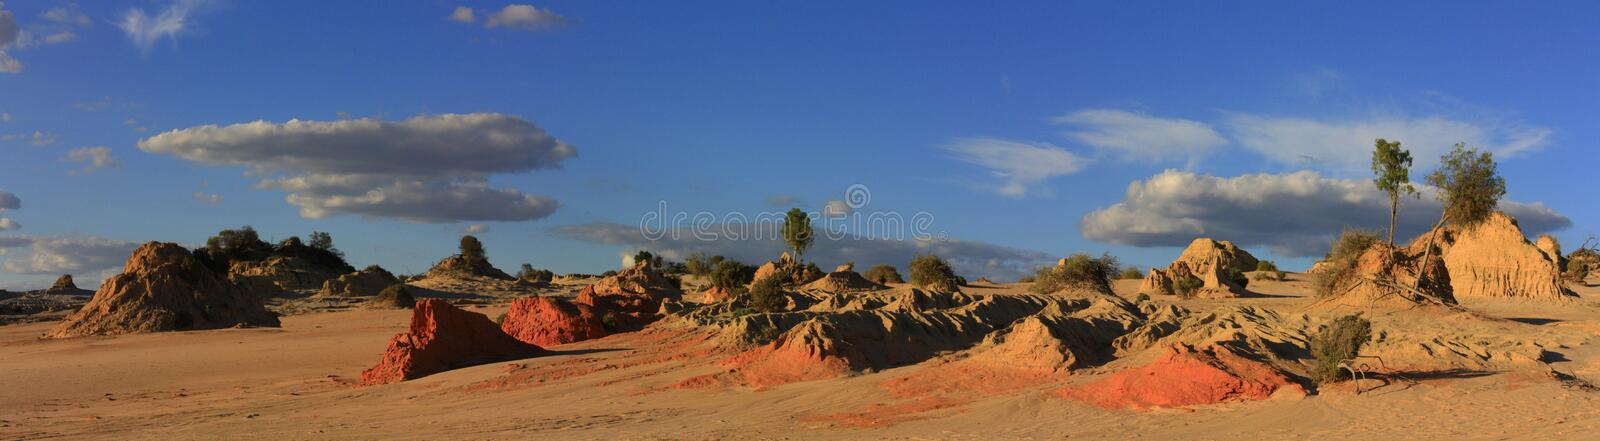 Panorama - Nationalpark des Mungos, NSW, Australien stockfoto